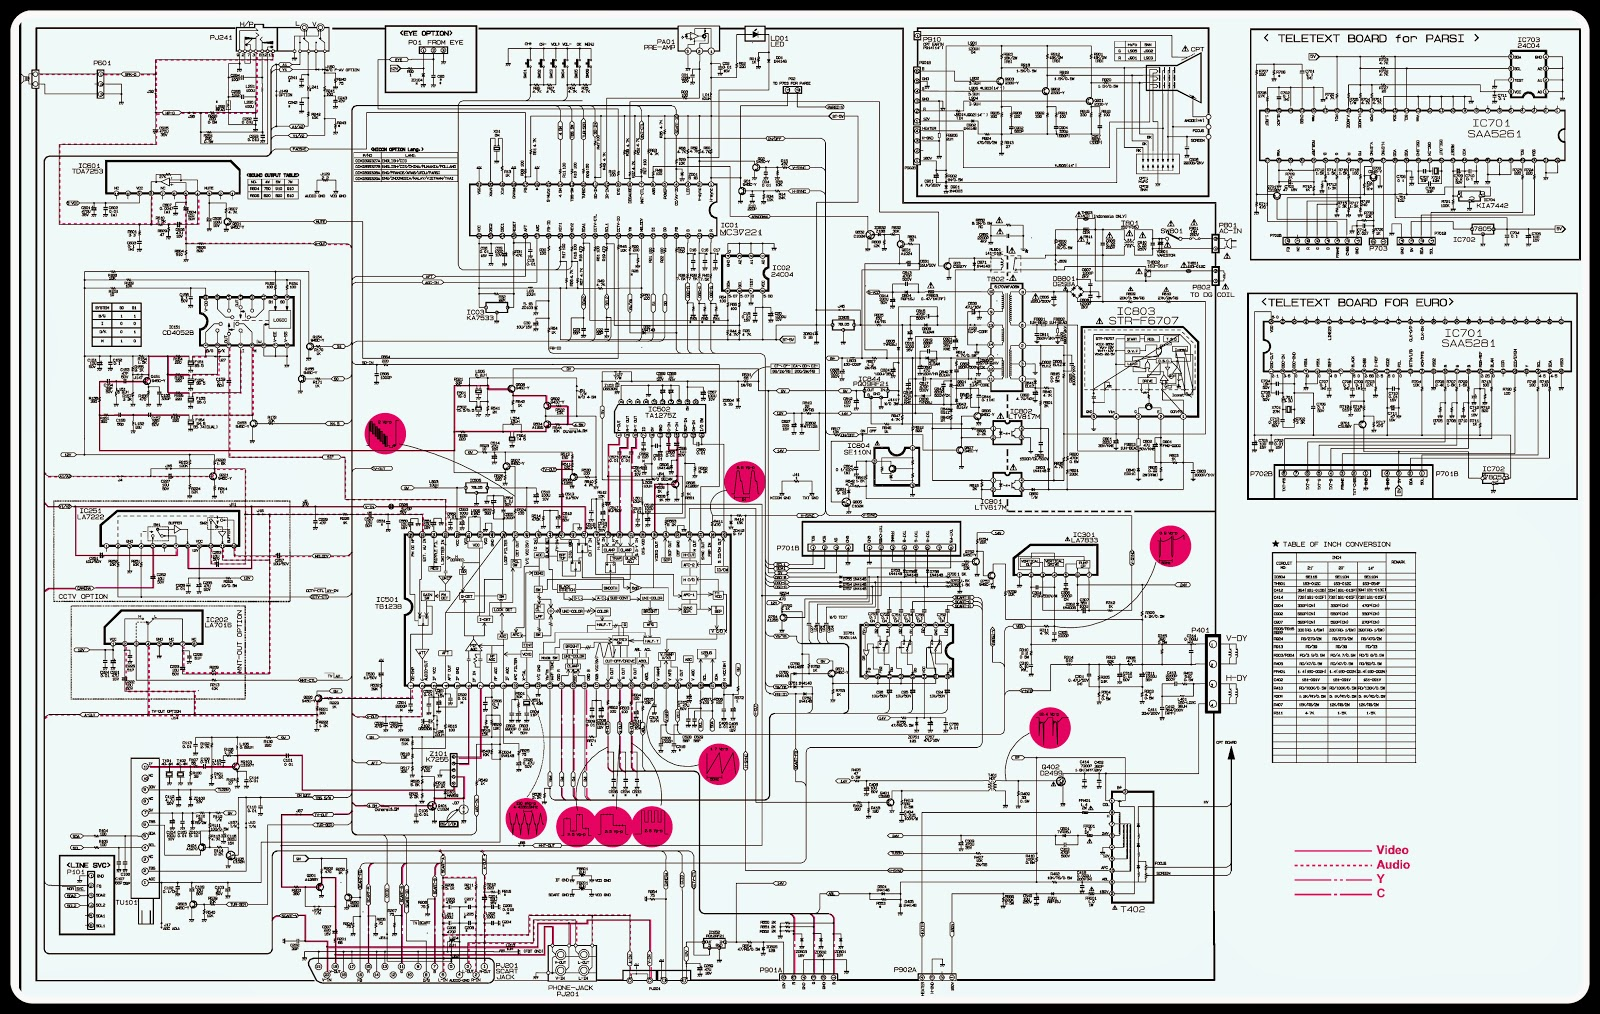 lg tv connection diagram wiring diagram  lg tv diagram great installation of wiring diagram \\u2022lg tv circuit diagram learn basic electronics